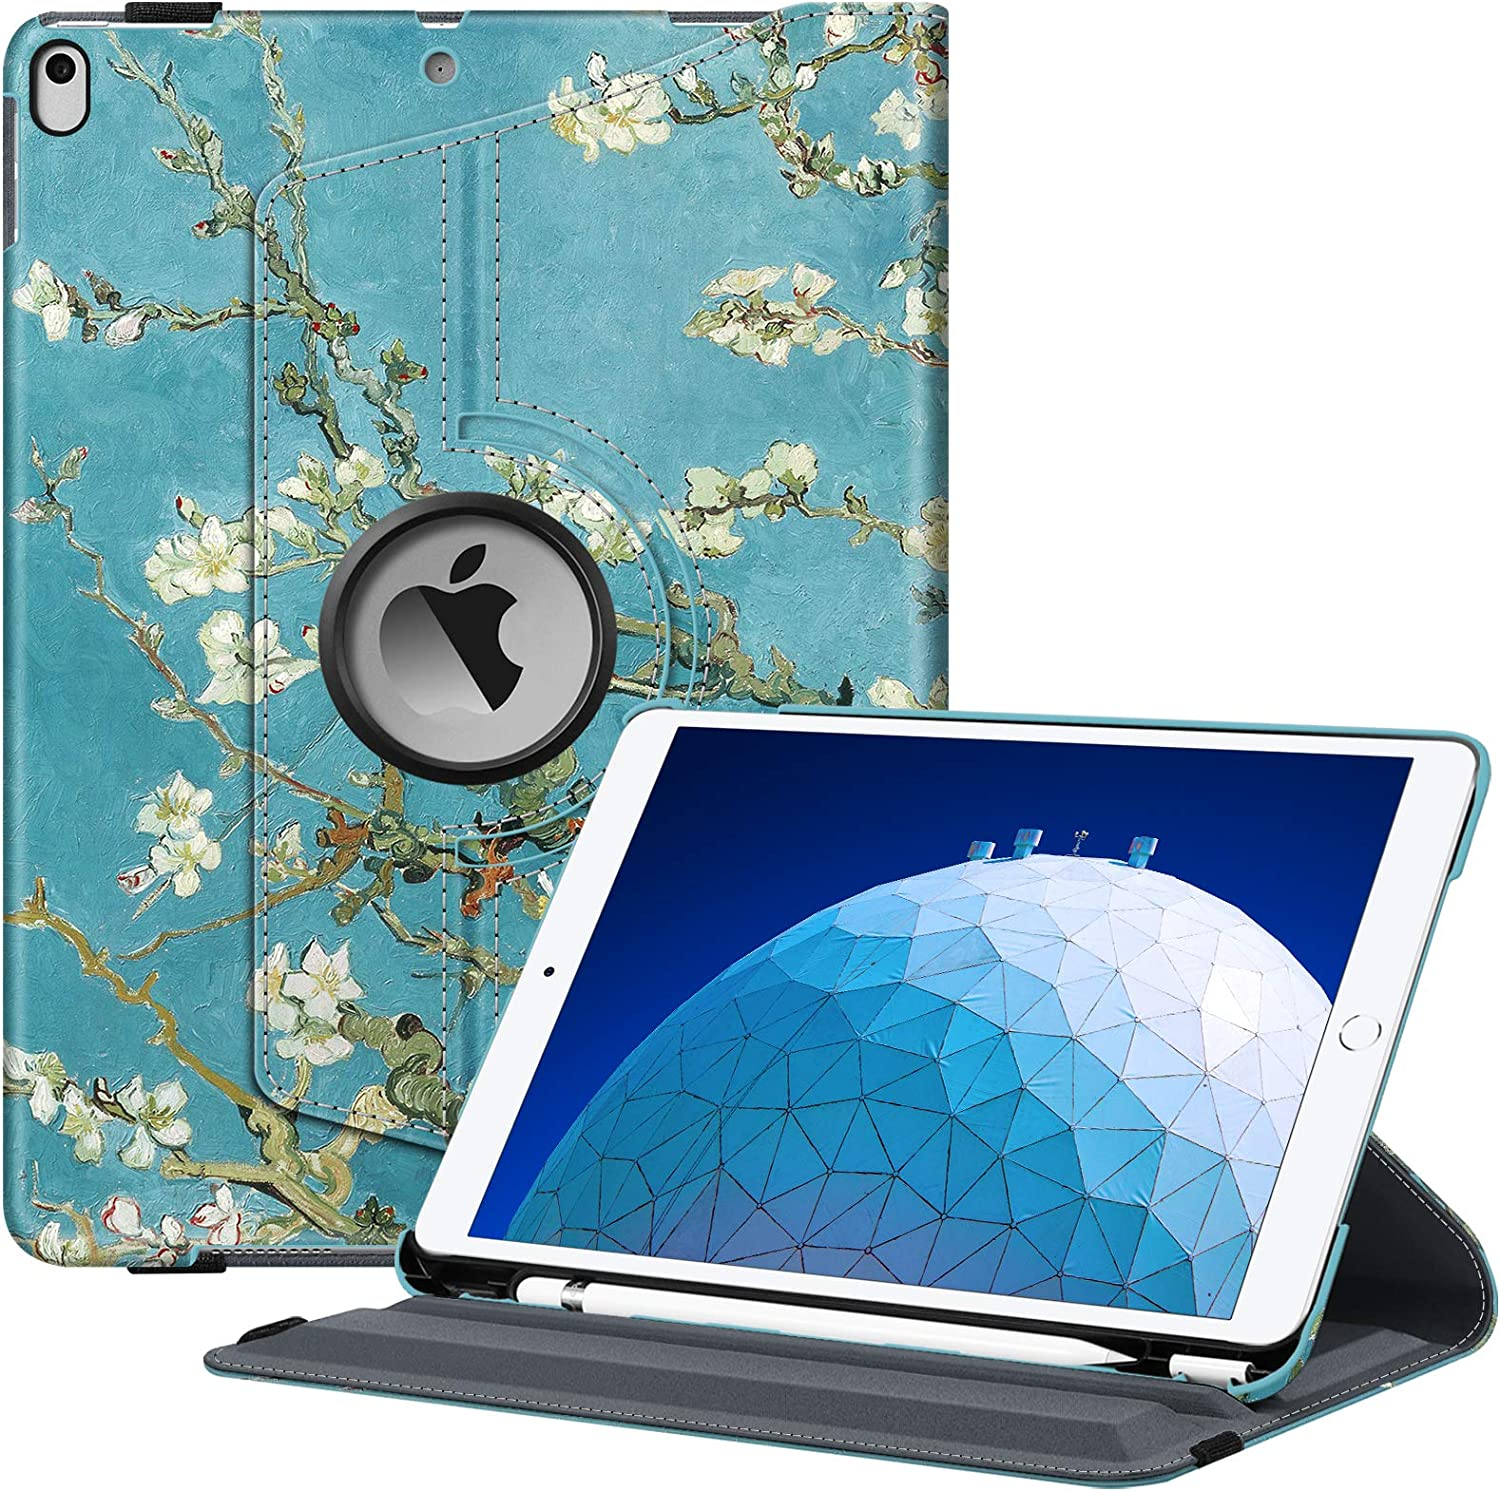 "Fintie Rotating Case for iPad Air (3rd Gen) 10.5"" 2019 / iPad Pro 10.5"" 2017 - 360 Degree Rotating Stand Protective Cover with Built-in Pencil Holder, Auto Sleep / Wake (Blossom)"